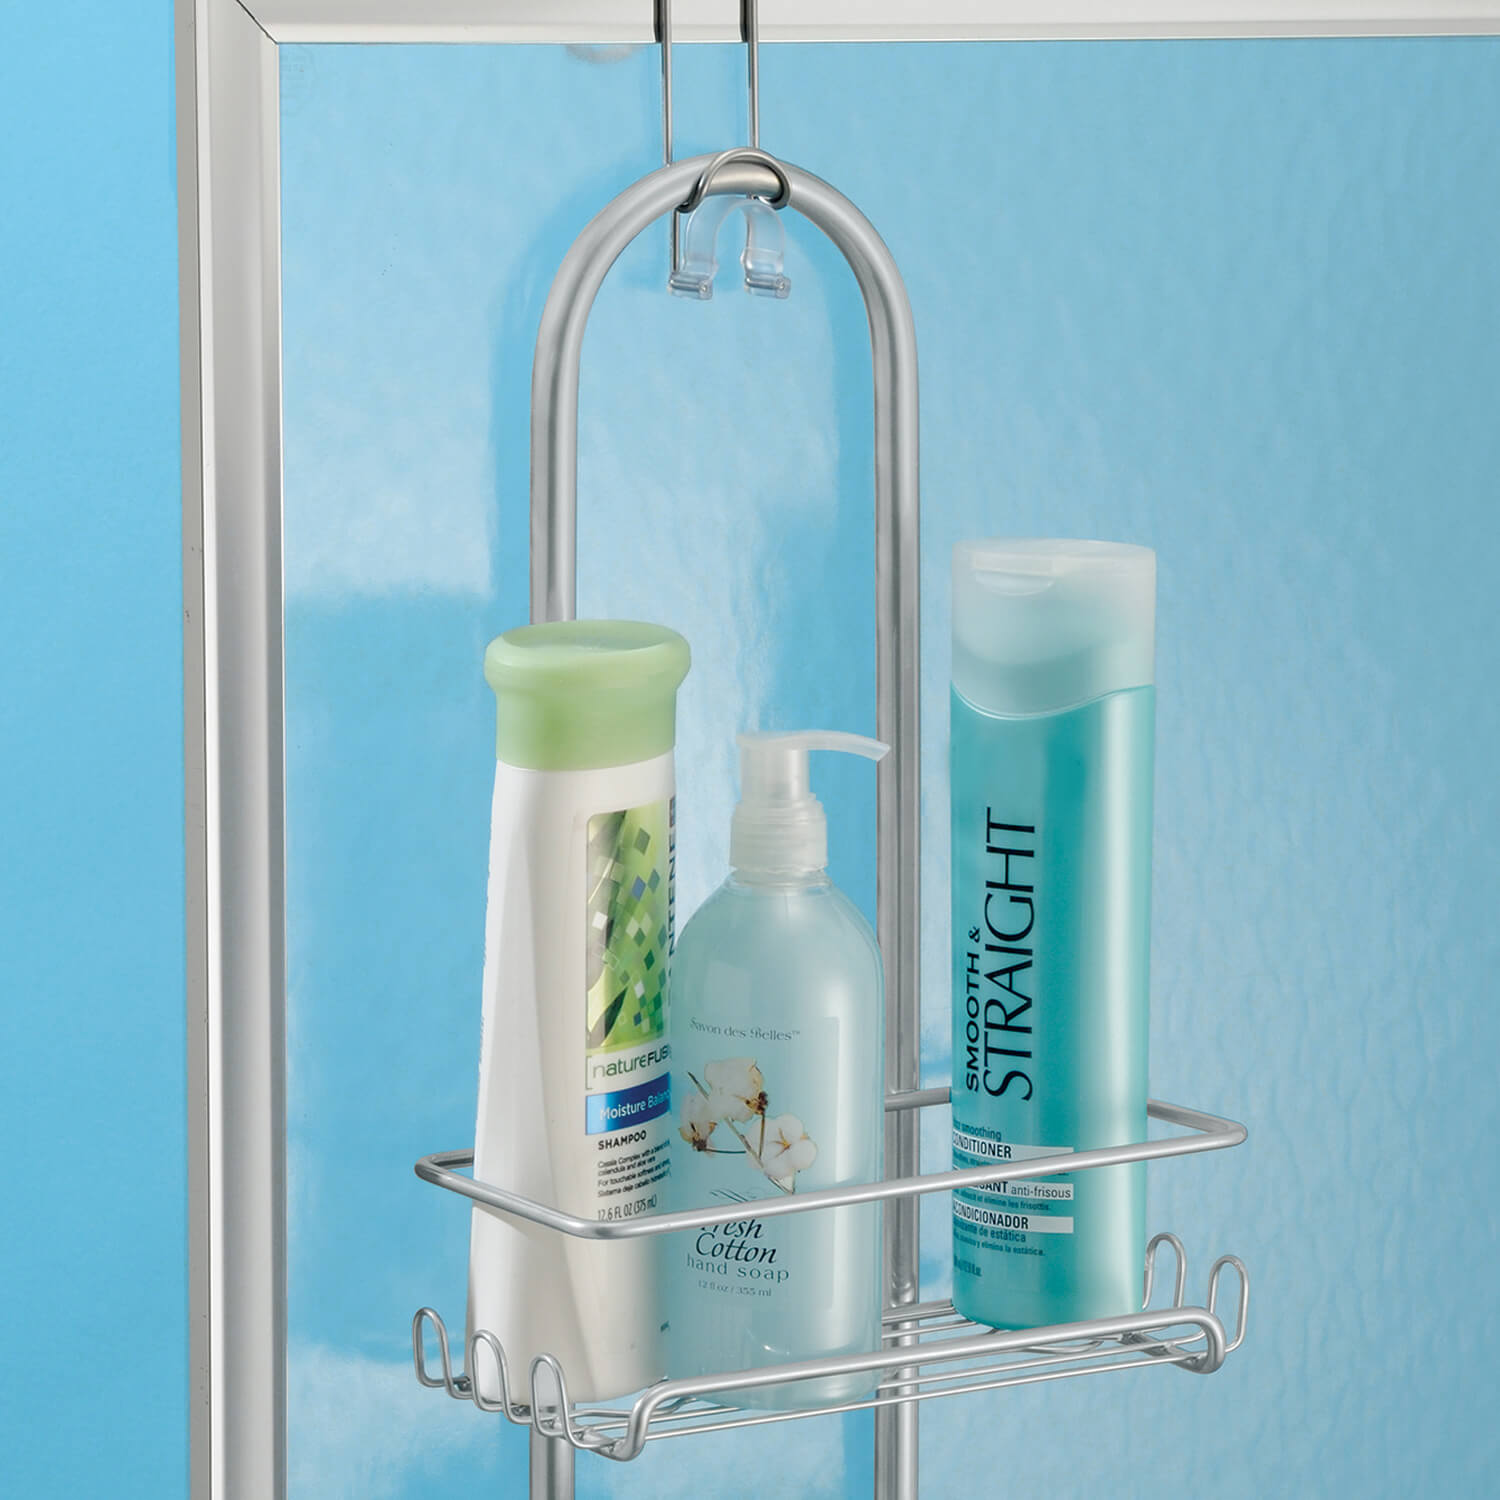 Outstanding 2 Tier Shower Caddy Adornment - Bathtub Ideas - dilata.info